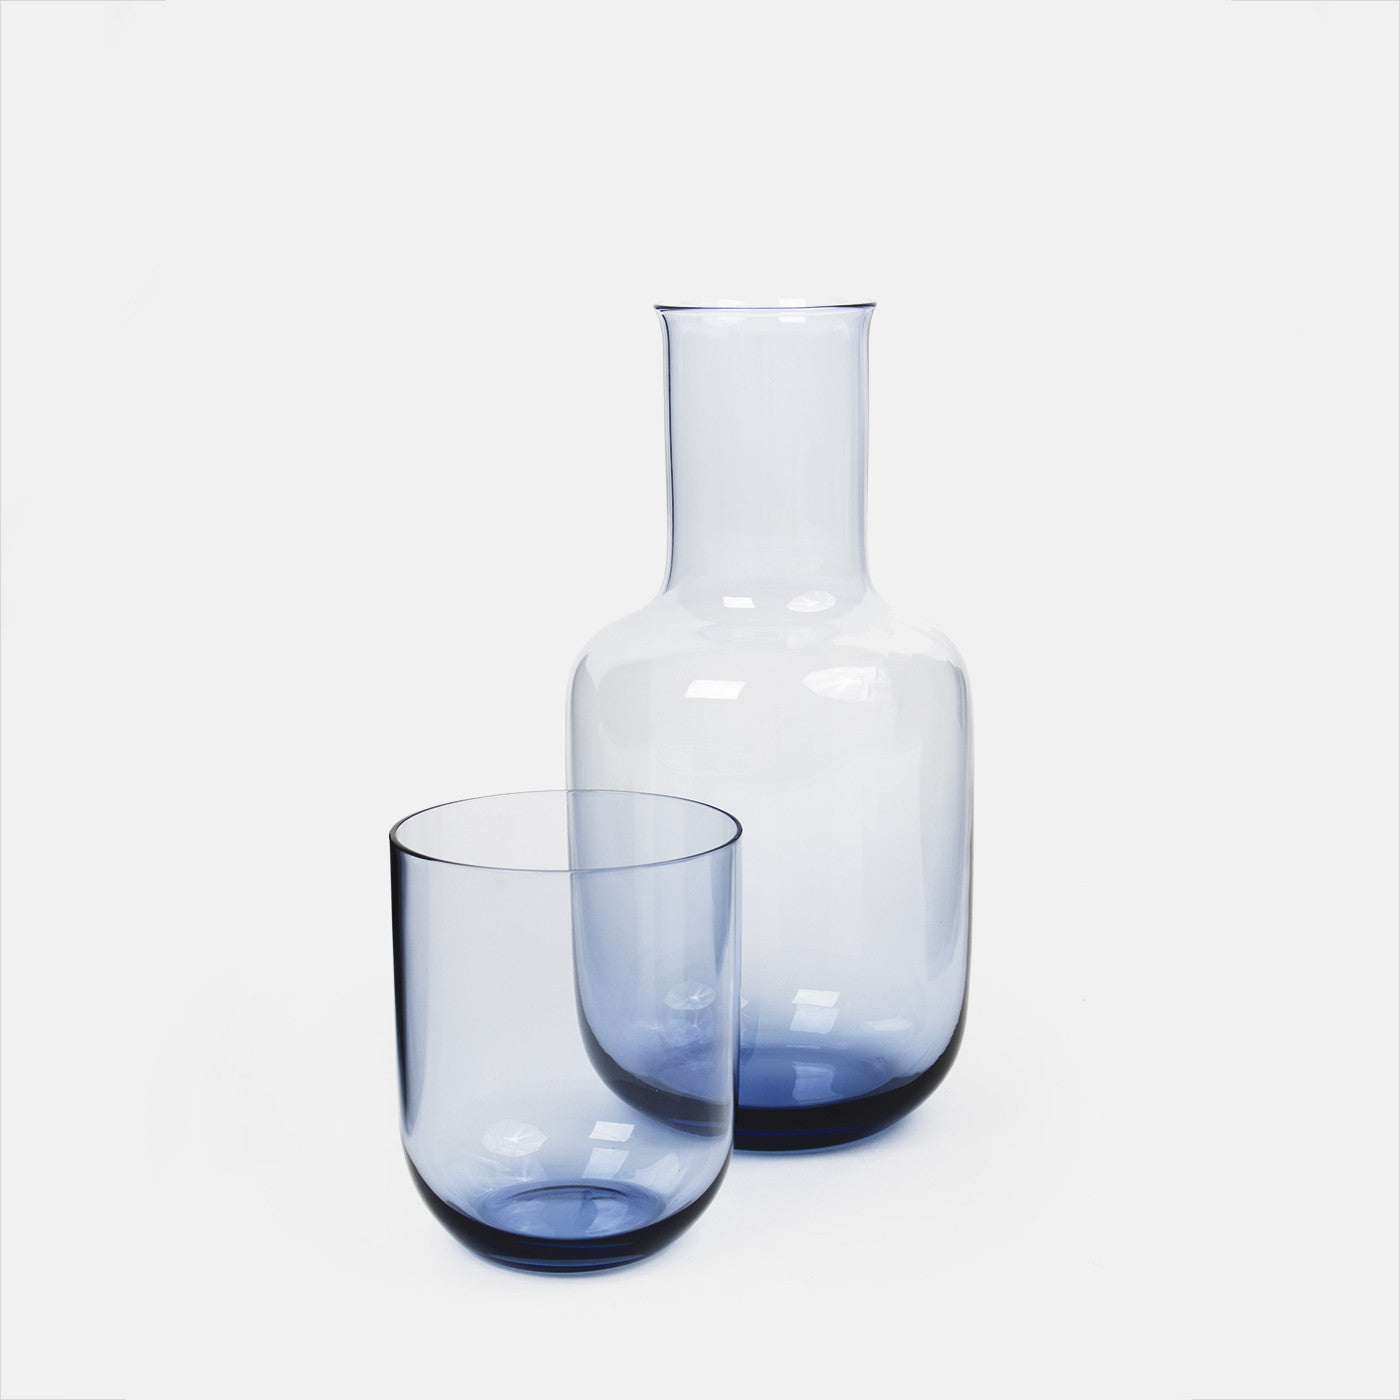 Carafe With Cup In Blue